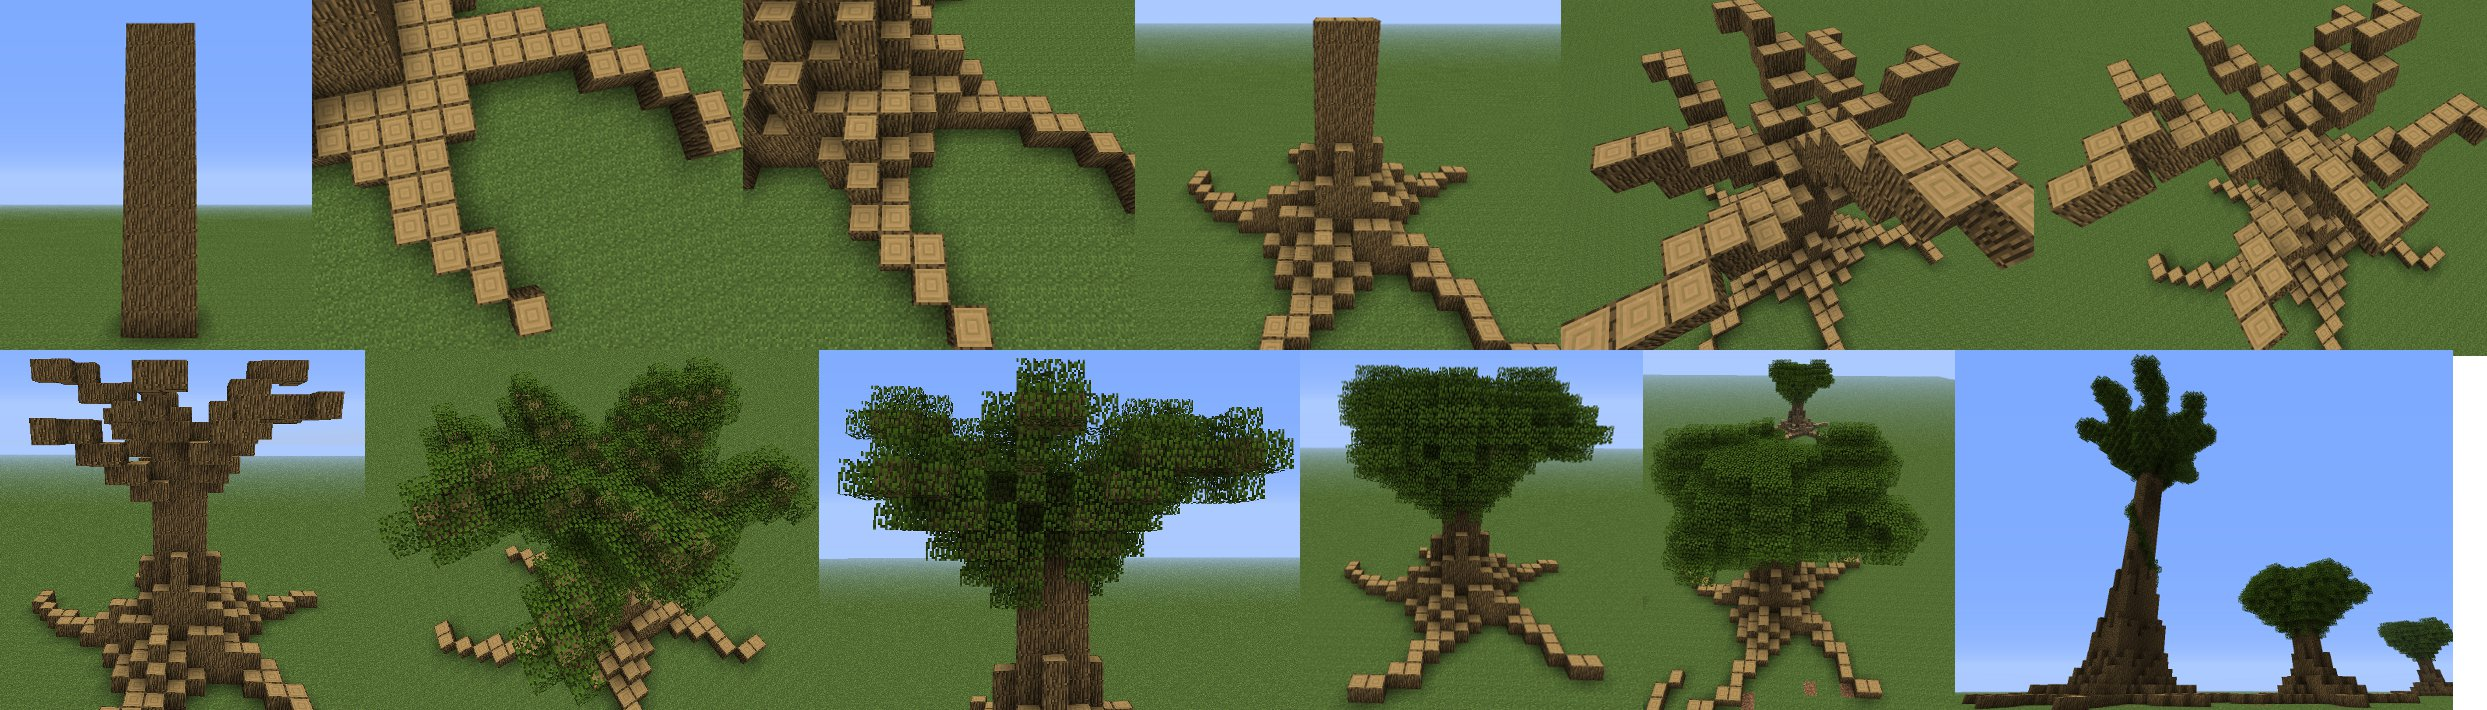 How to Build Large/Huge Trees in Minecraft - Minecraft Guides